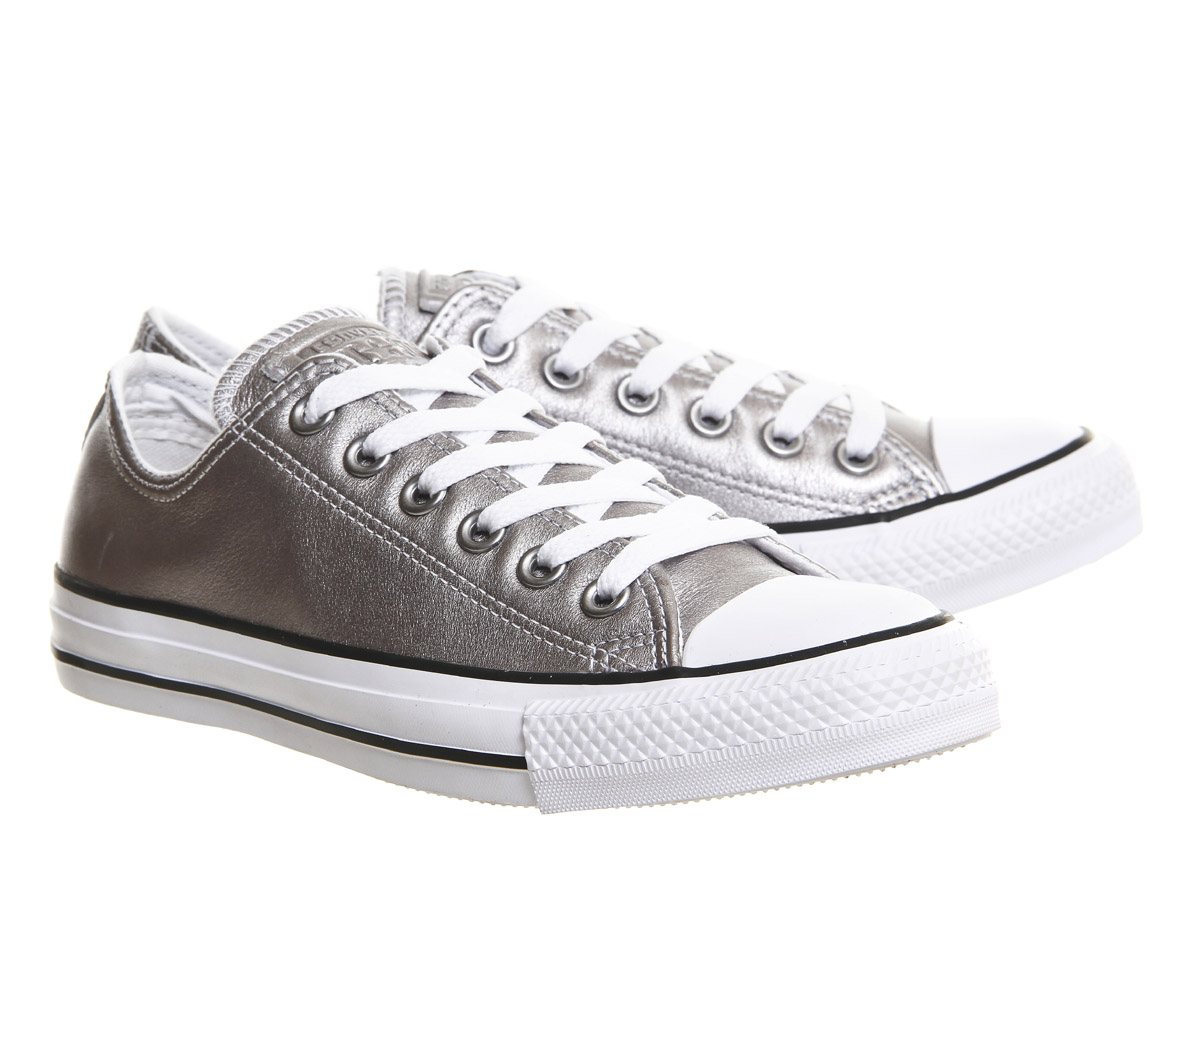 bf61337651ce4f Converse All Star Low Leather New Silver Exclusive Trainers Shoes